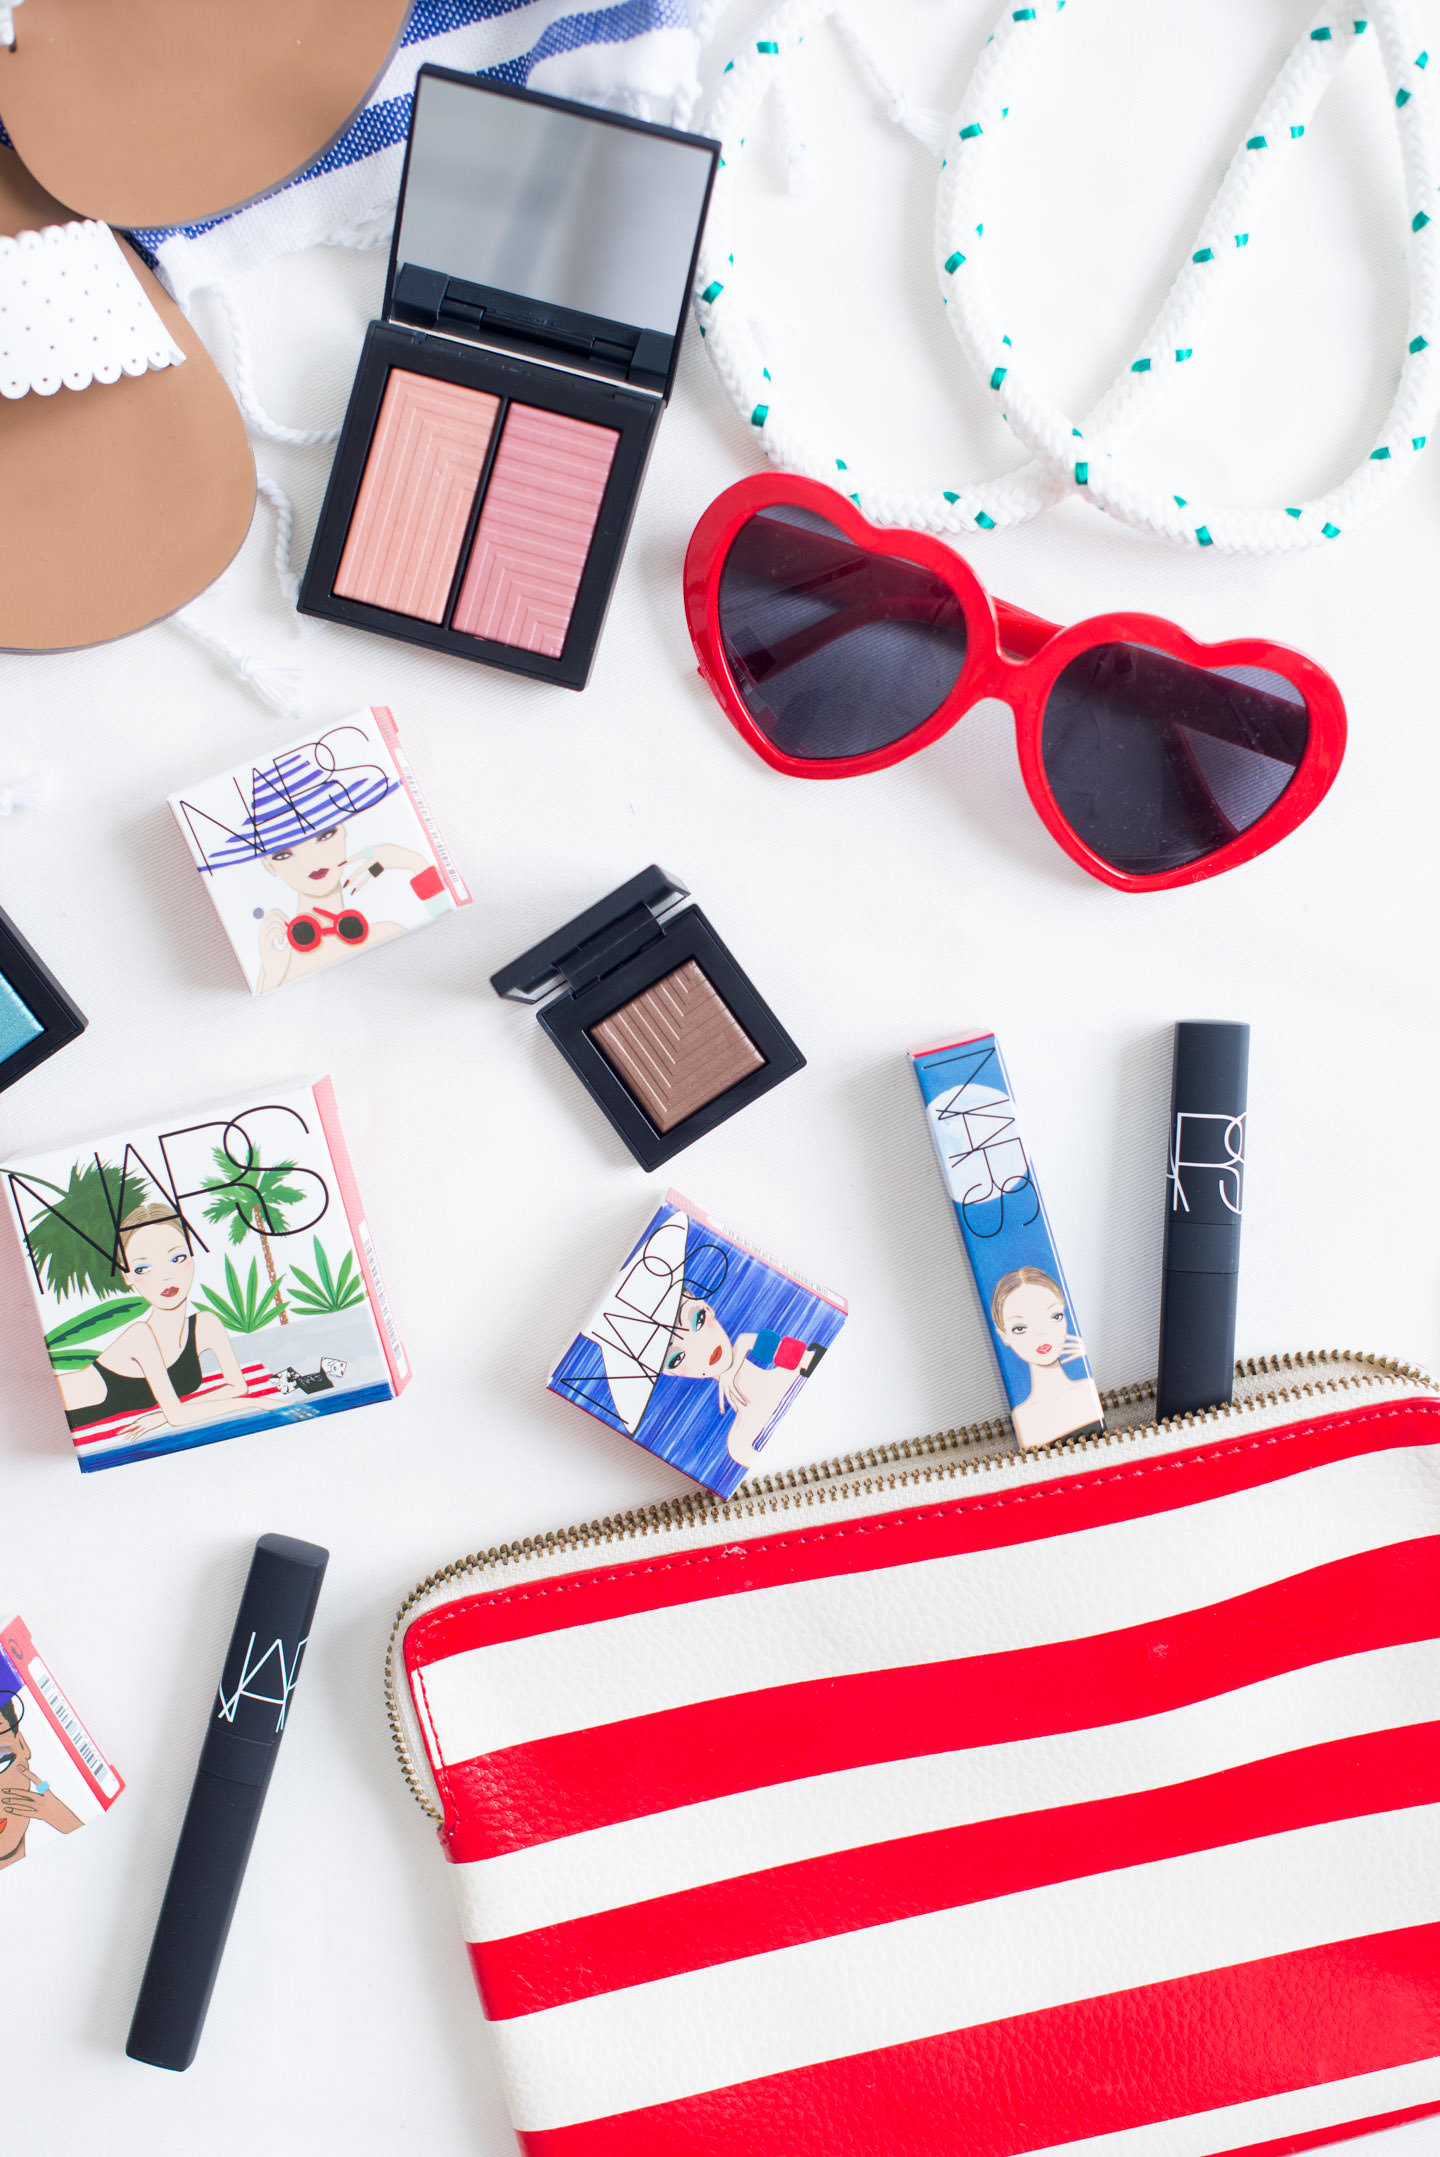 Blog-mode-and-the-city-beaute-nars-undercover-nouveautes-edition-limitee-4